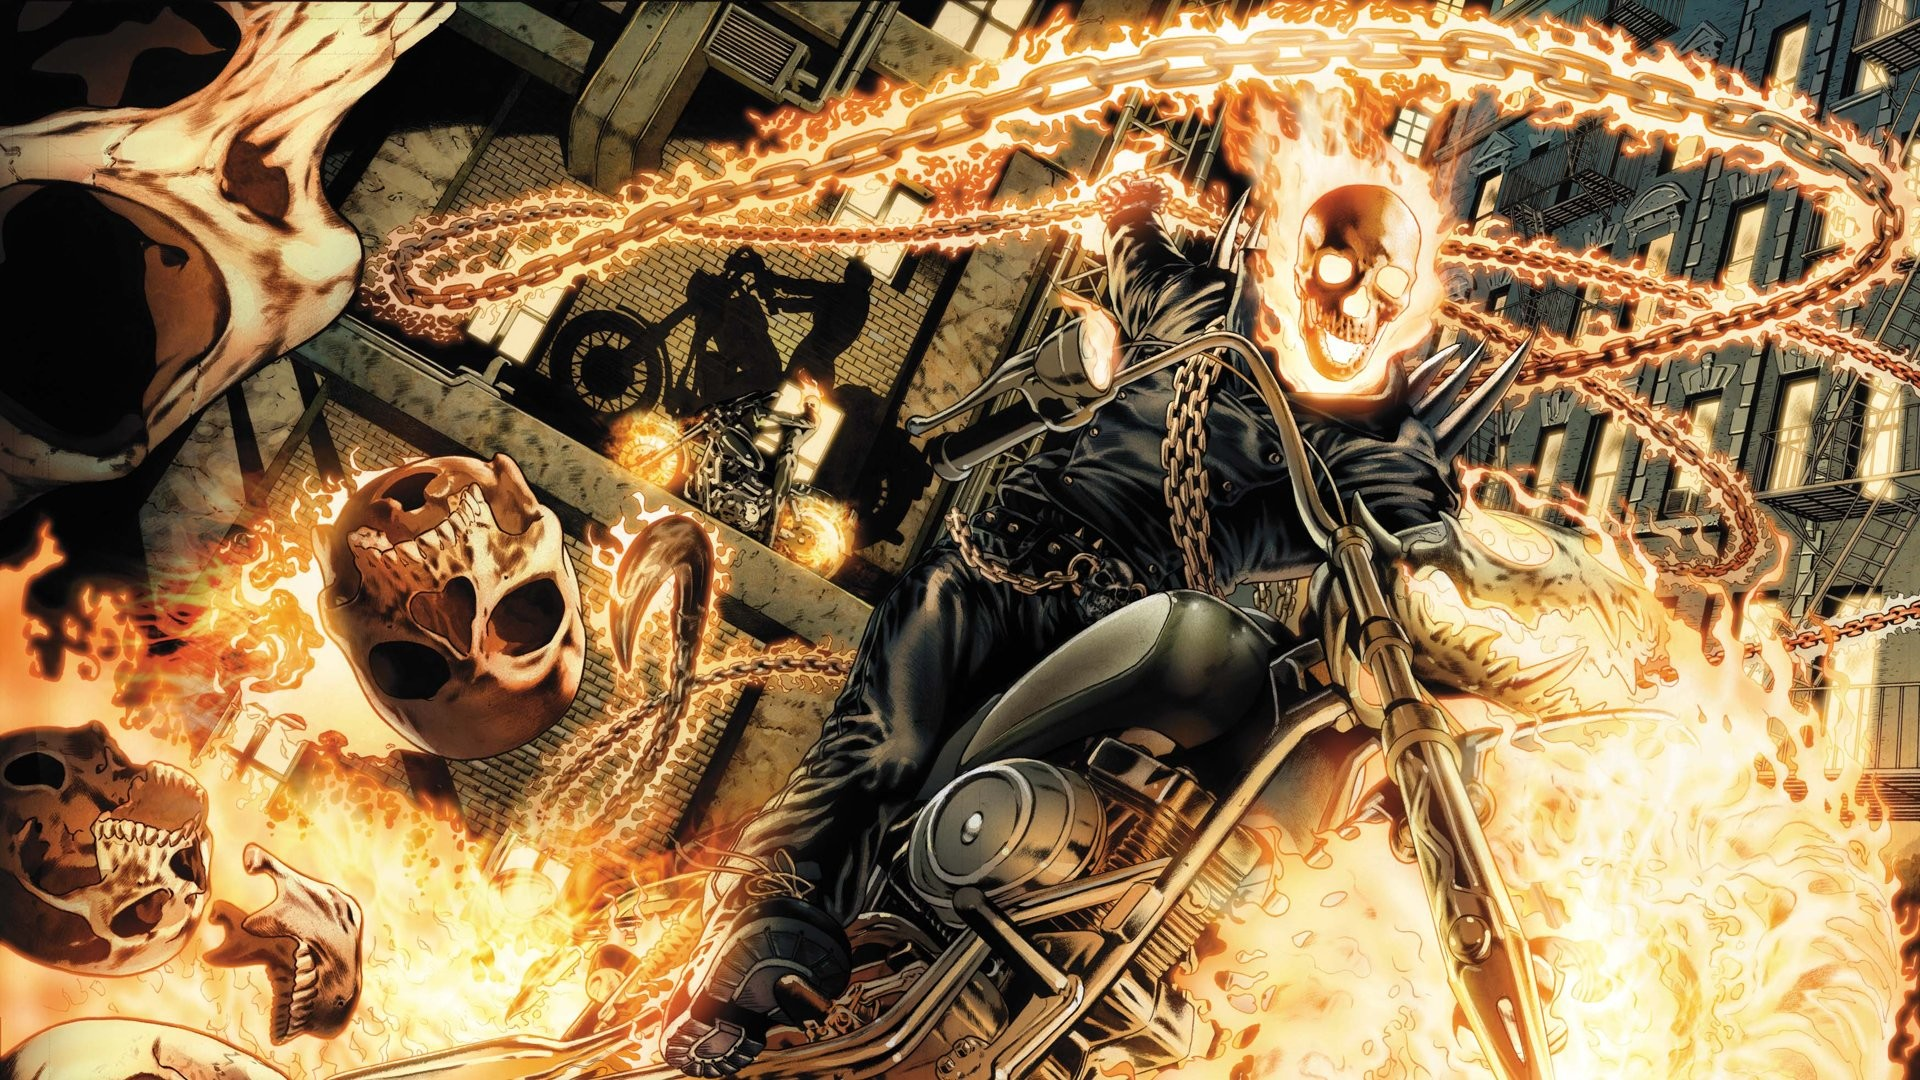 1920x1080 Ghost Rider wallpapers hd